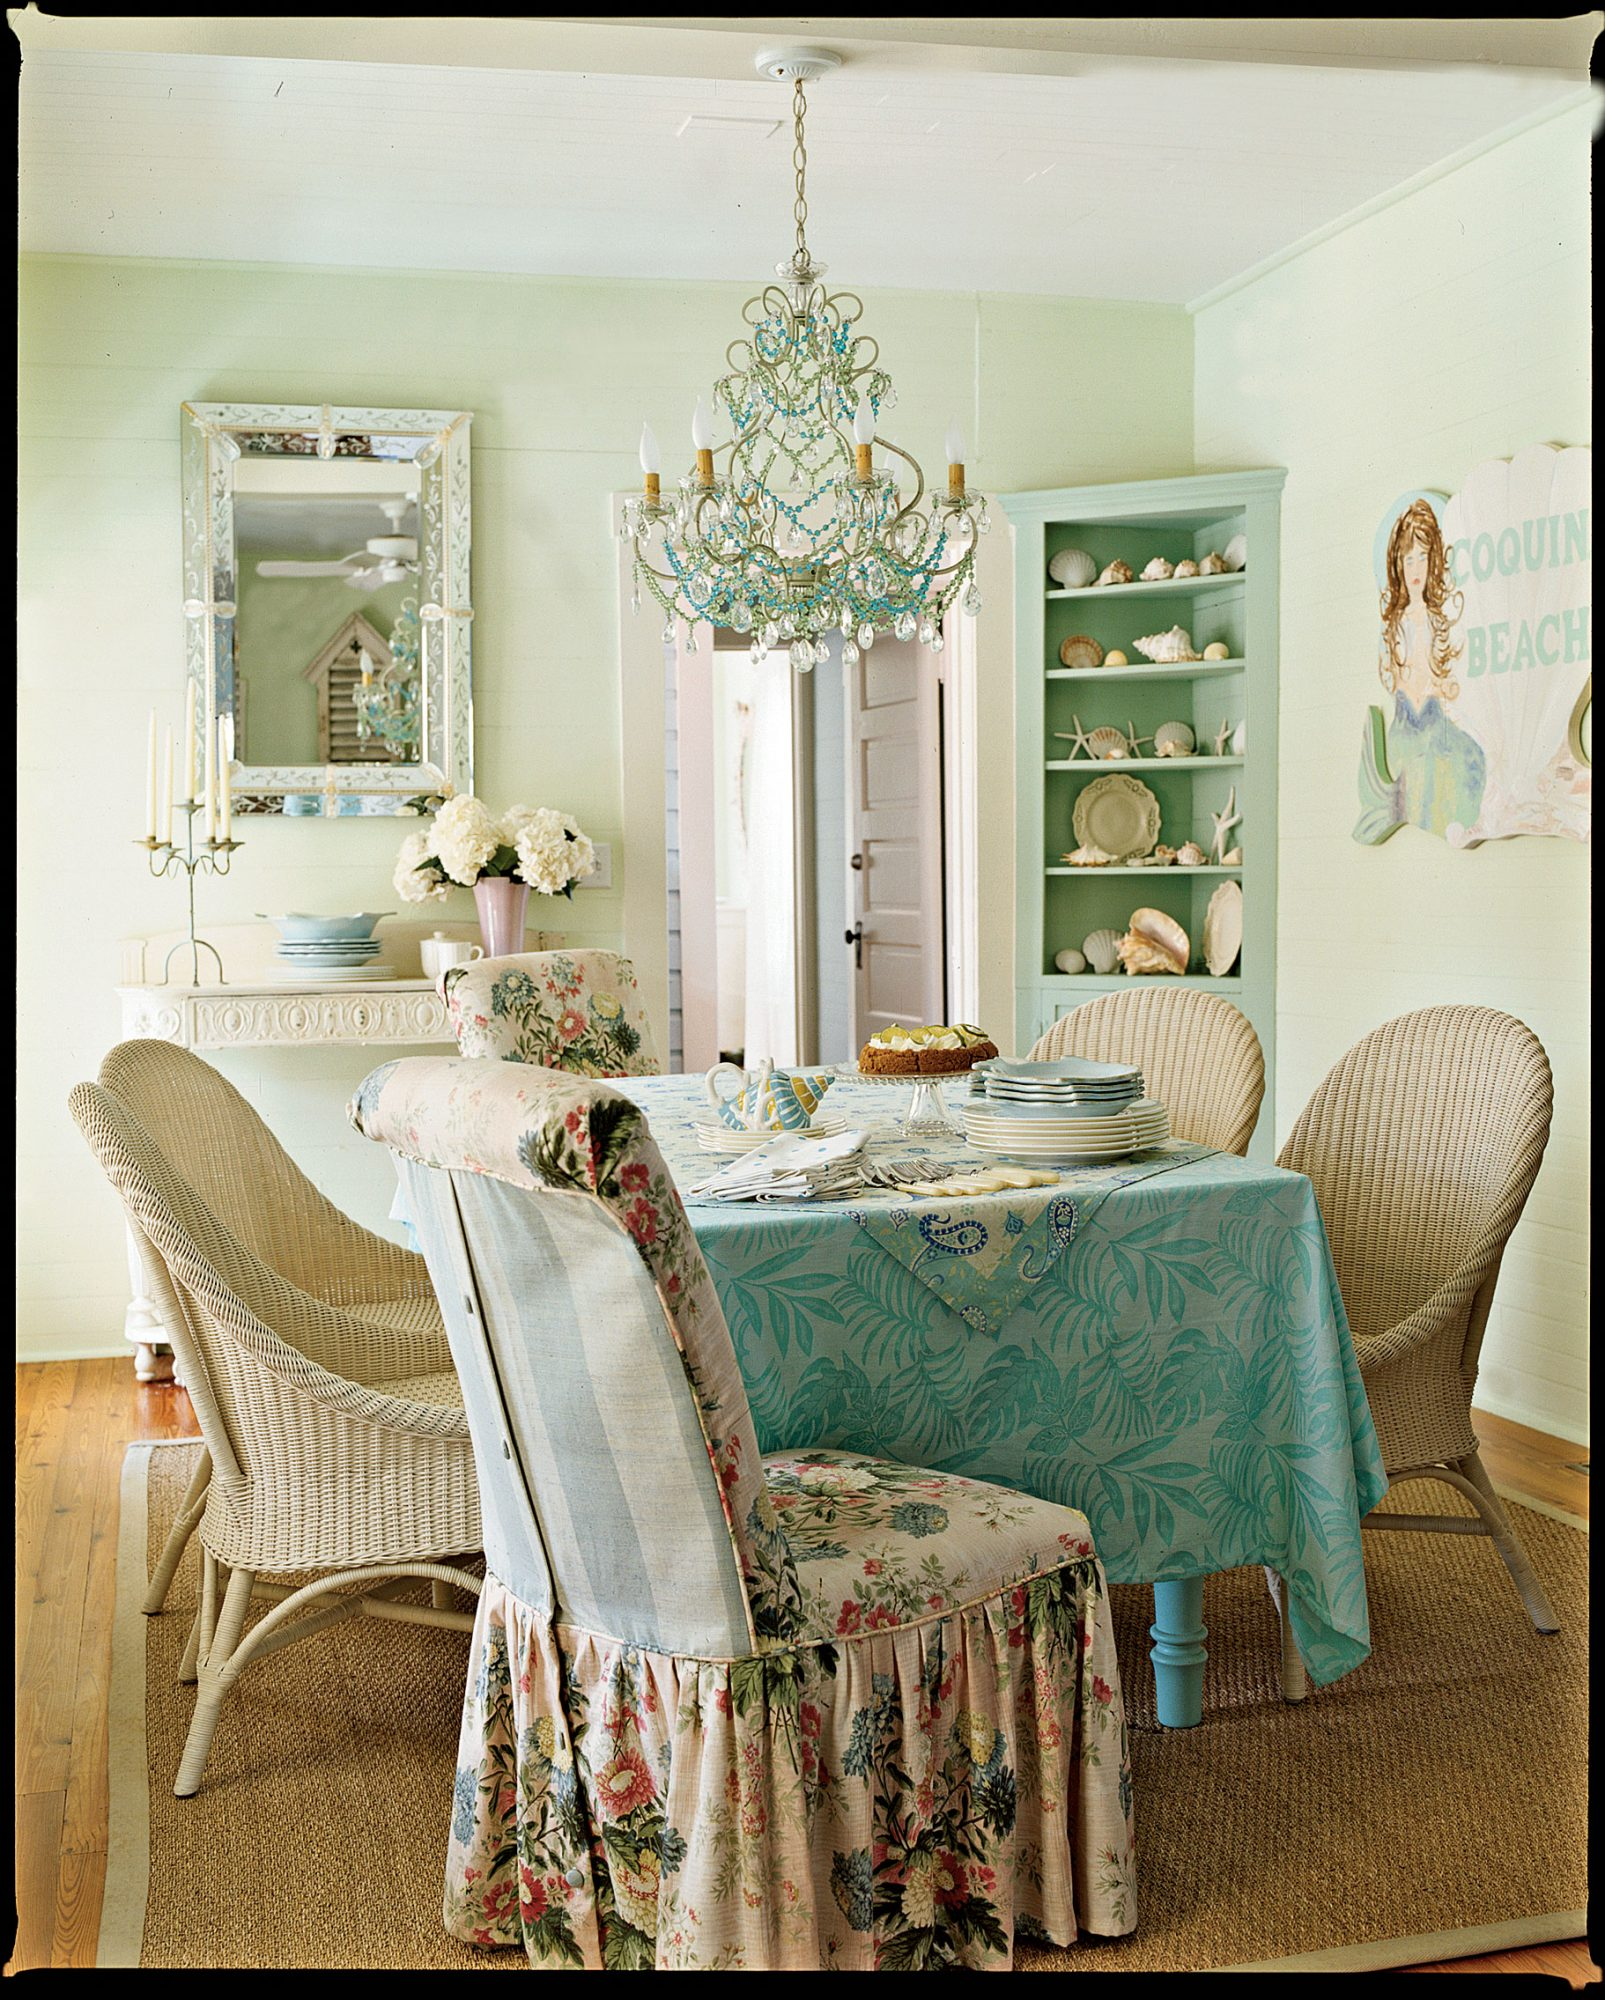 This sea-hued dining room strikes the ideal balance between formal and relaxed, with its fanciful chandelier and soft chintz slipcovers. Shells, sea stars, and a playful mermaid ensure that you won't forget you're at the beach.